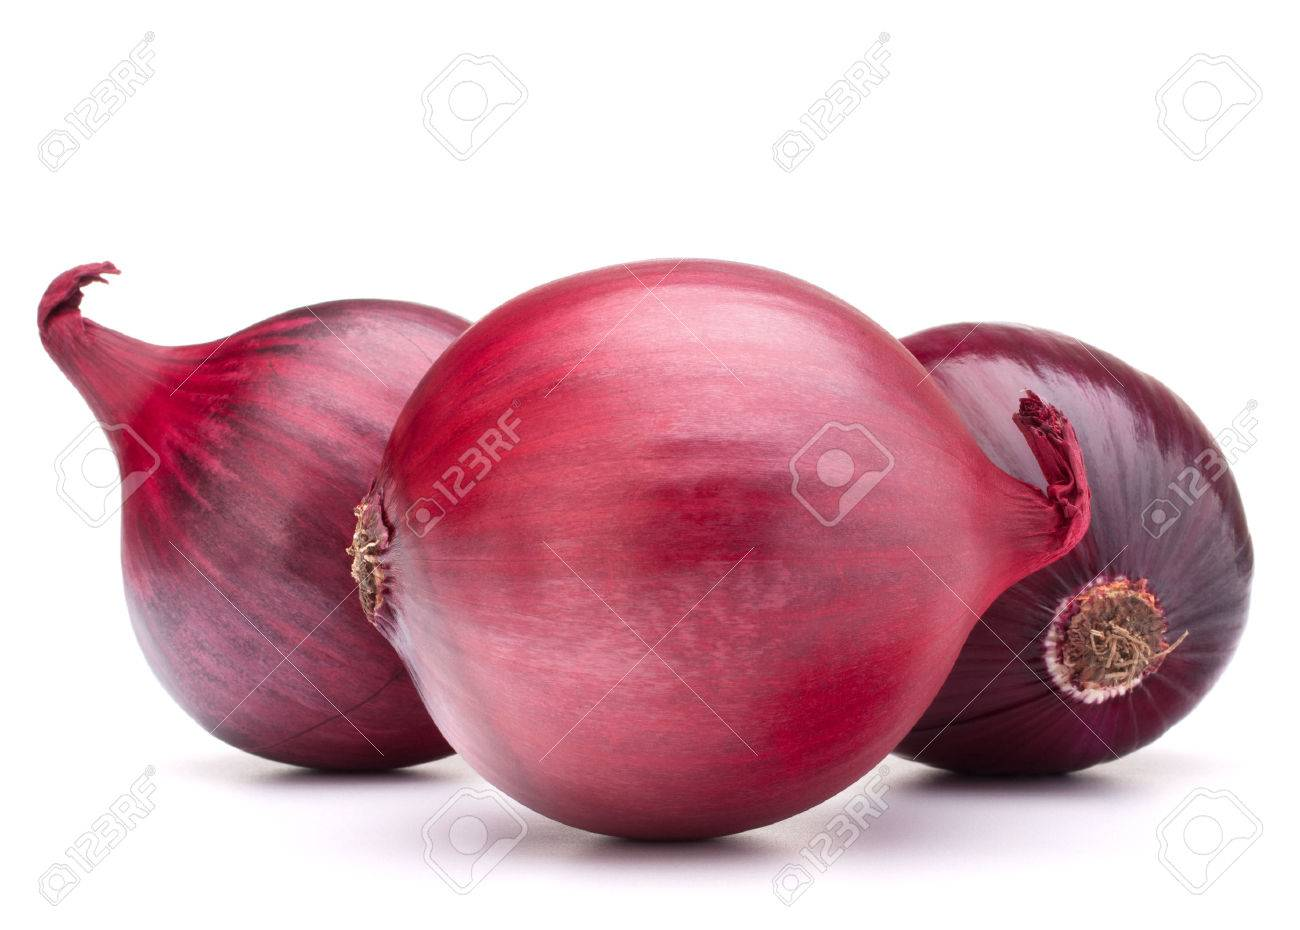 red onion bulb isolated on white background cutout - 37033579